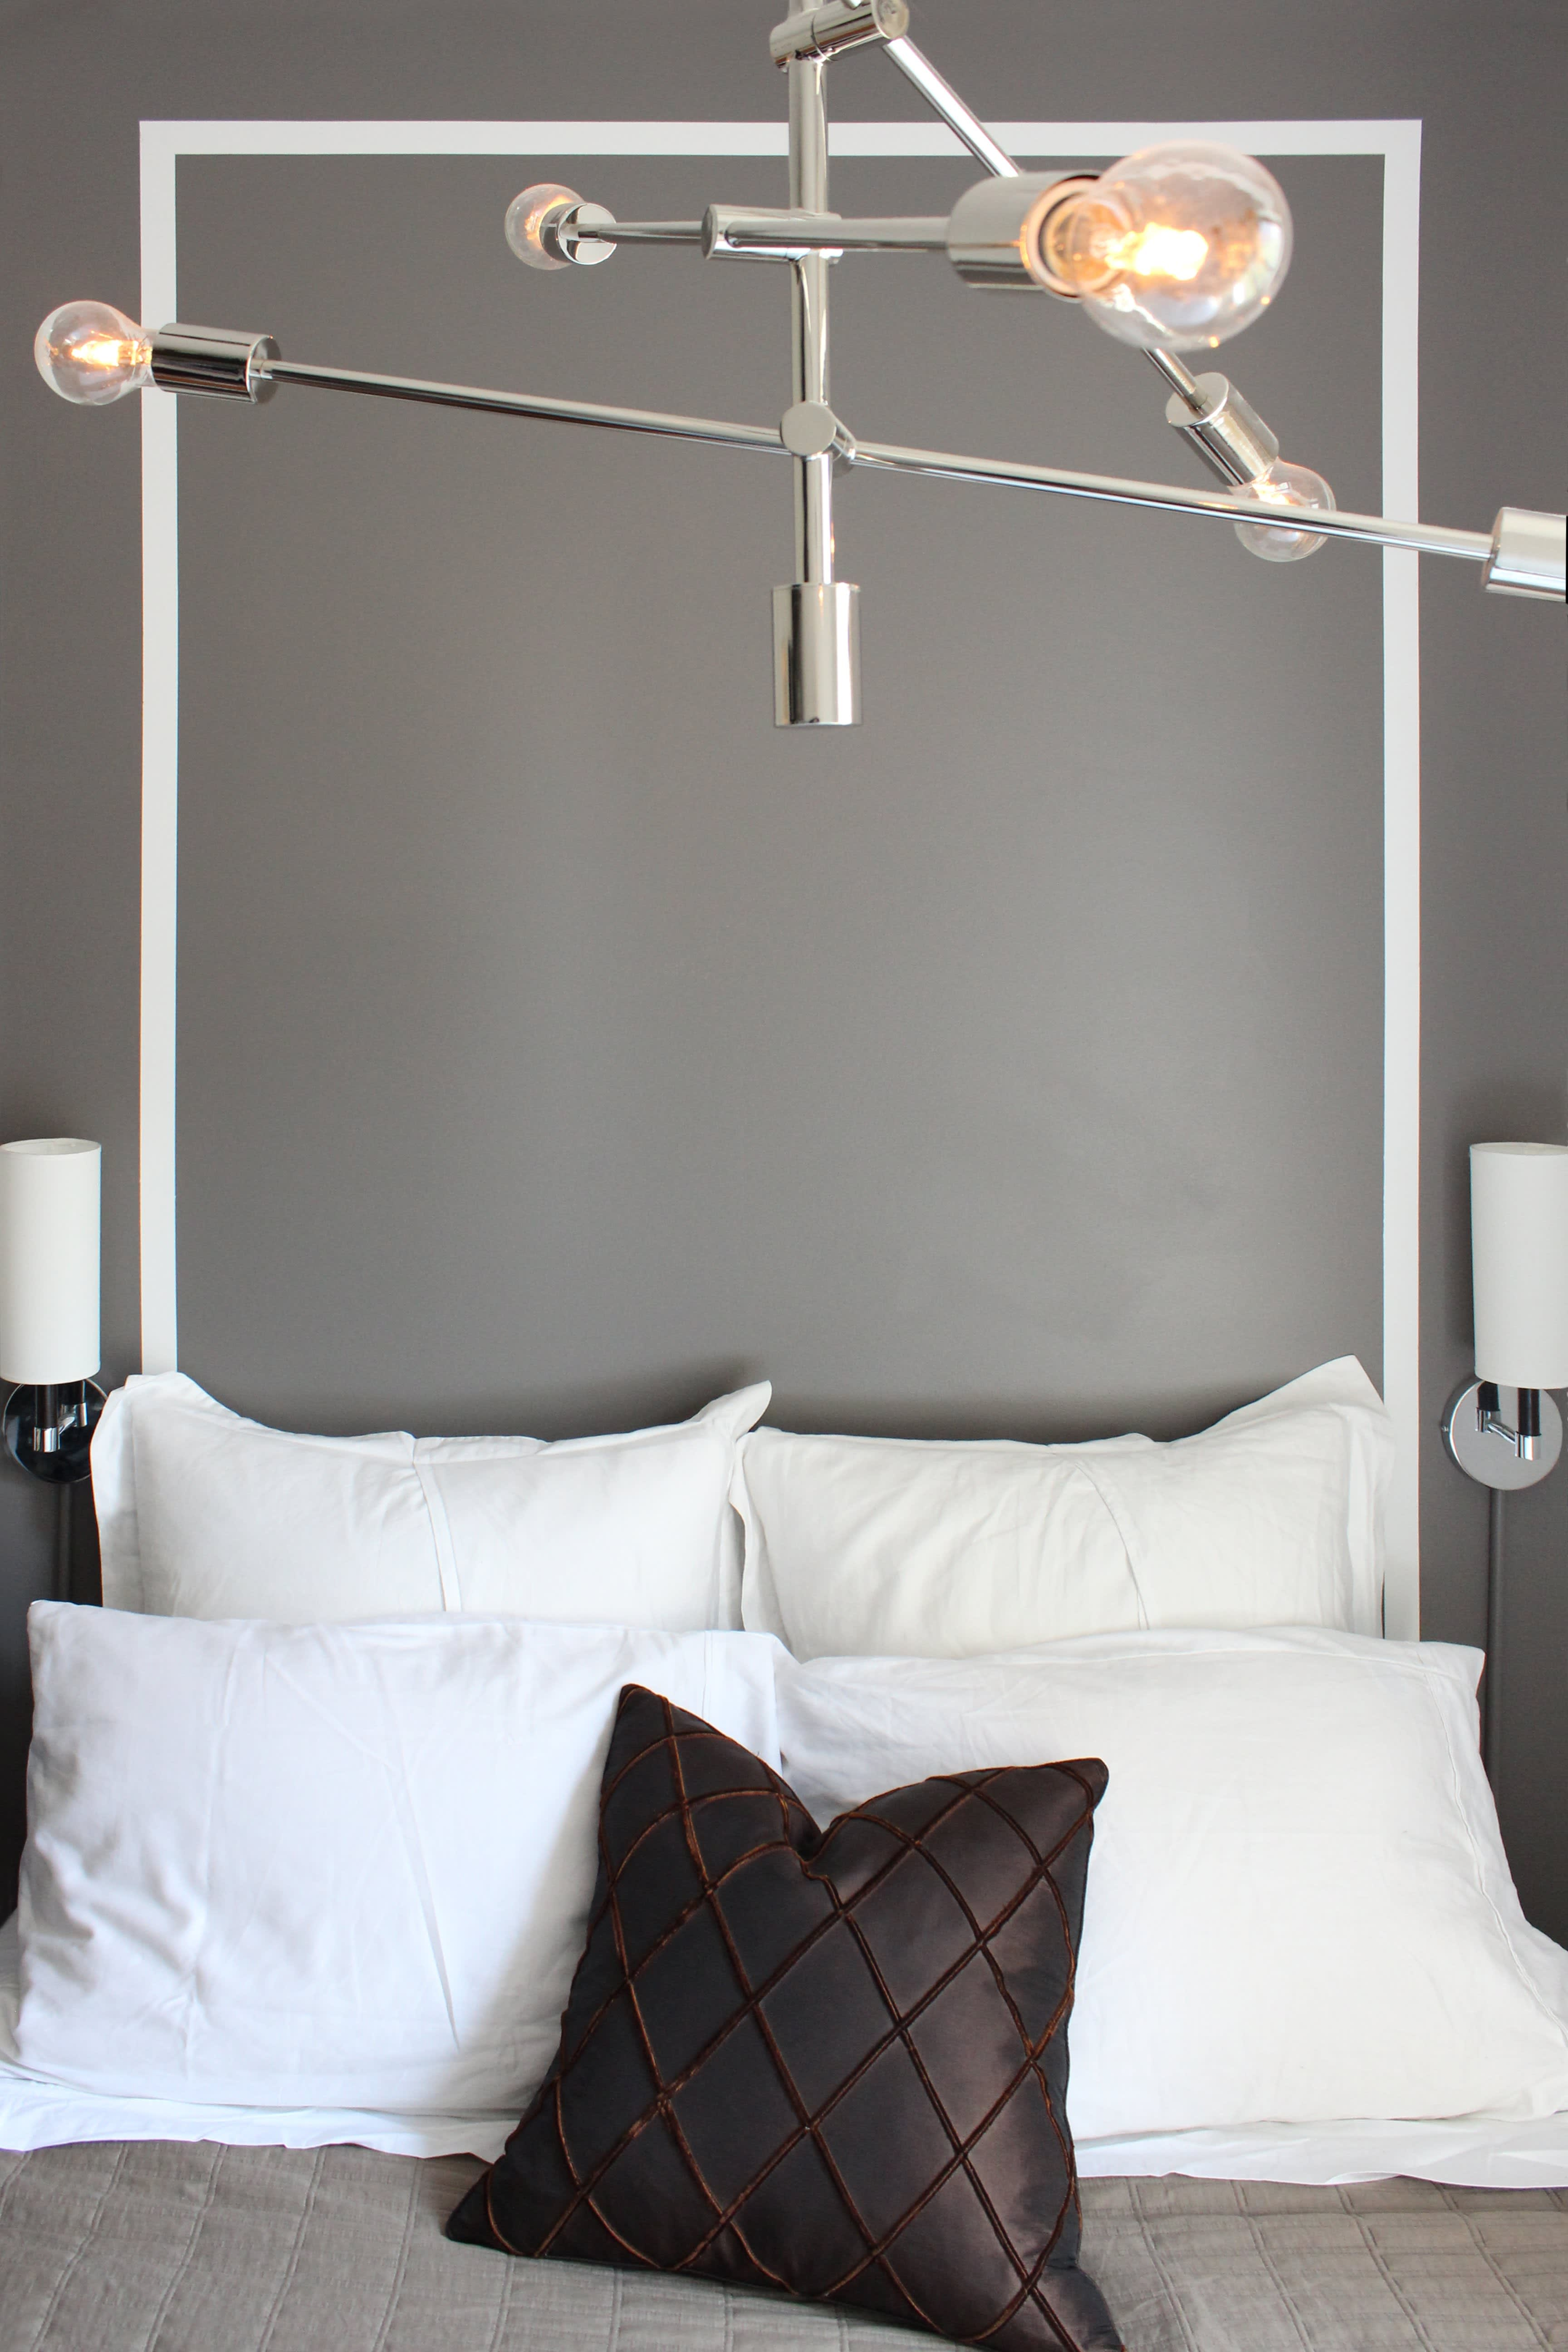 10 alternative headboard ideas you might not have thought - What to use instead of a headboard ...